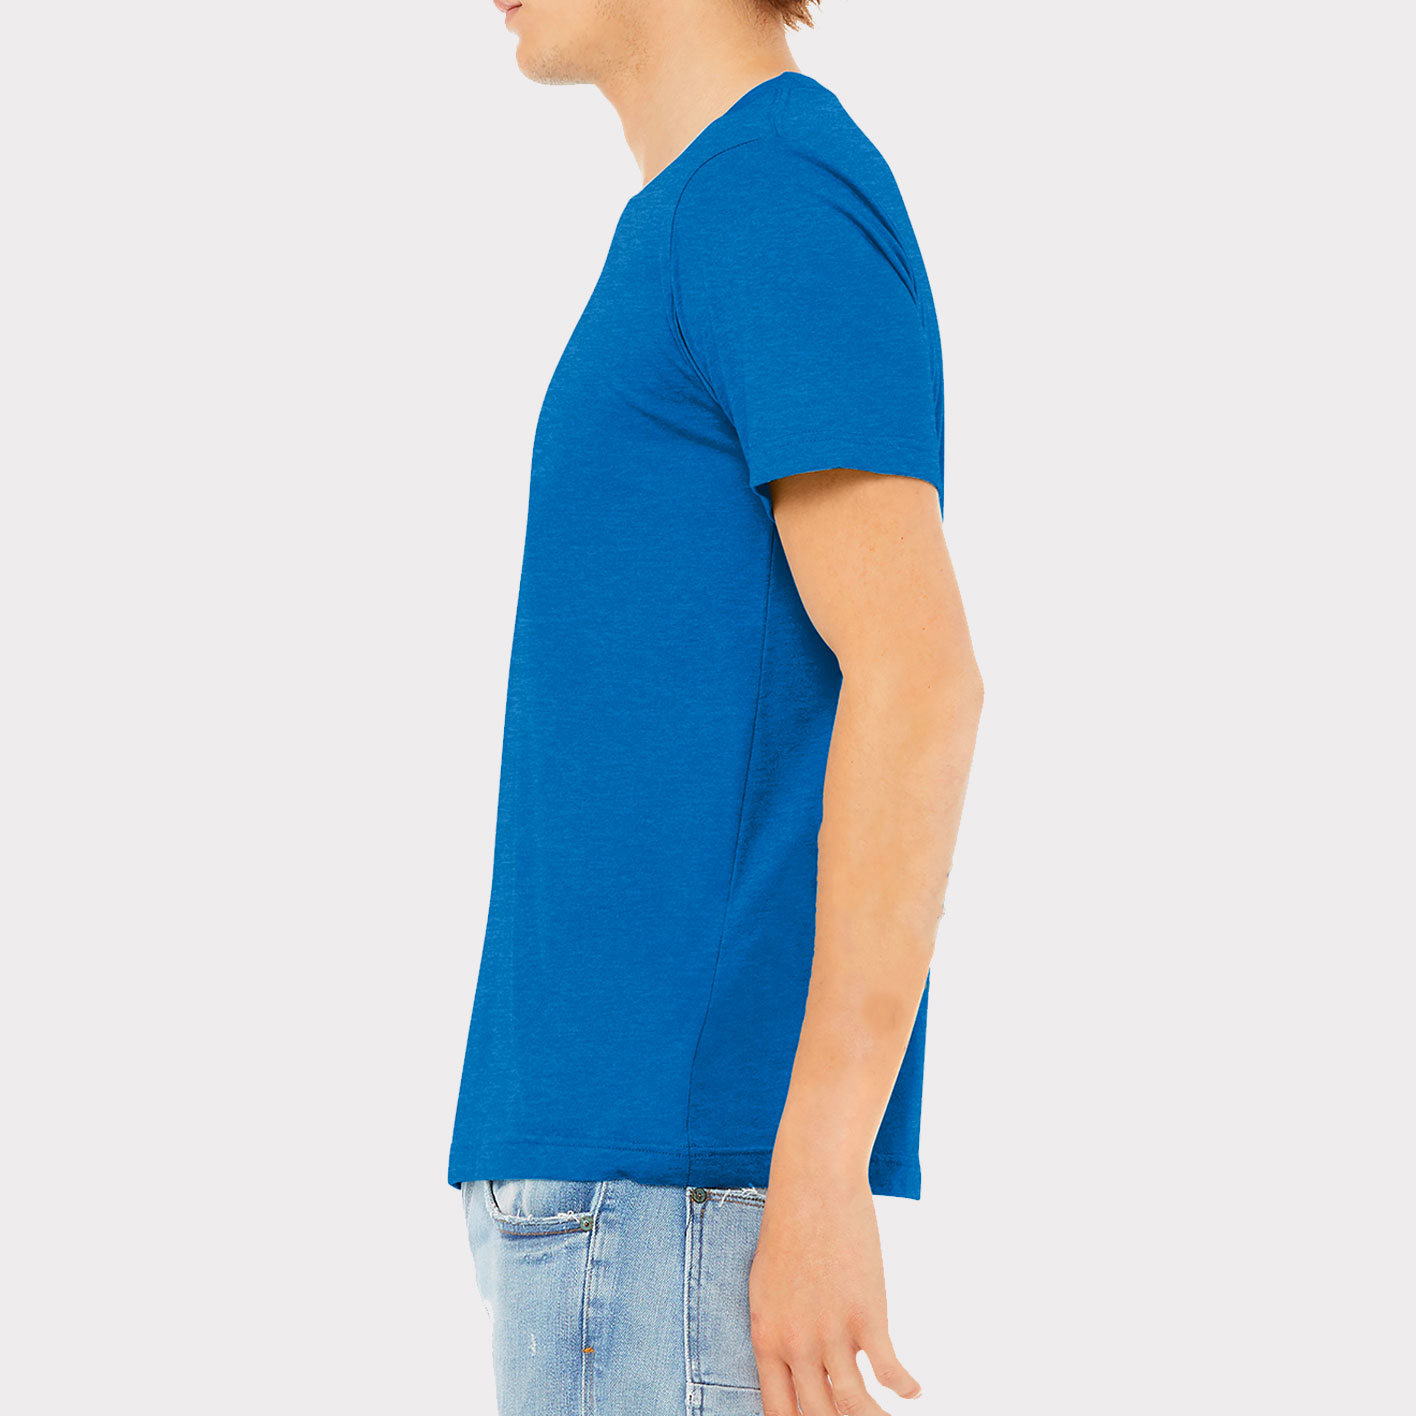 Blue T-Shirt Sideview